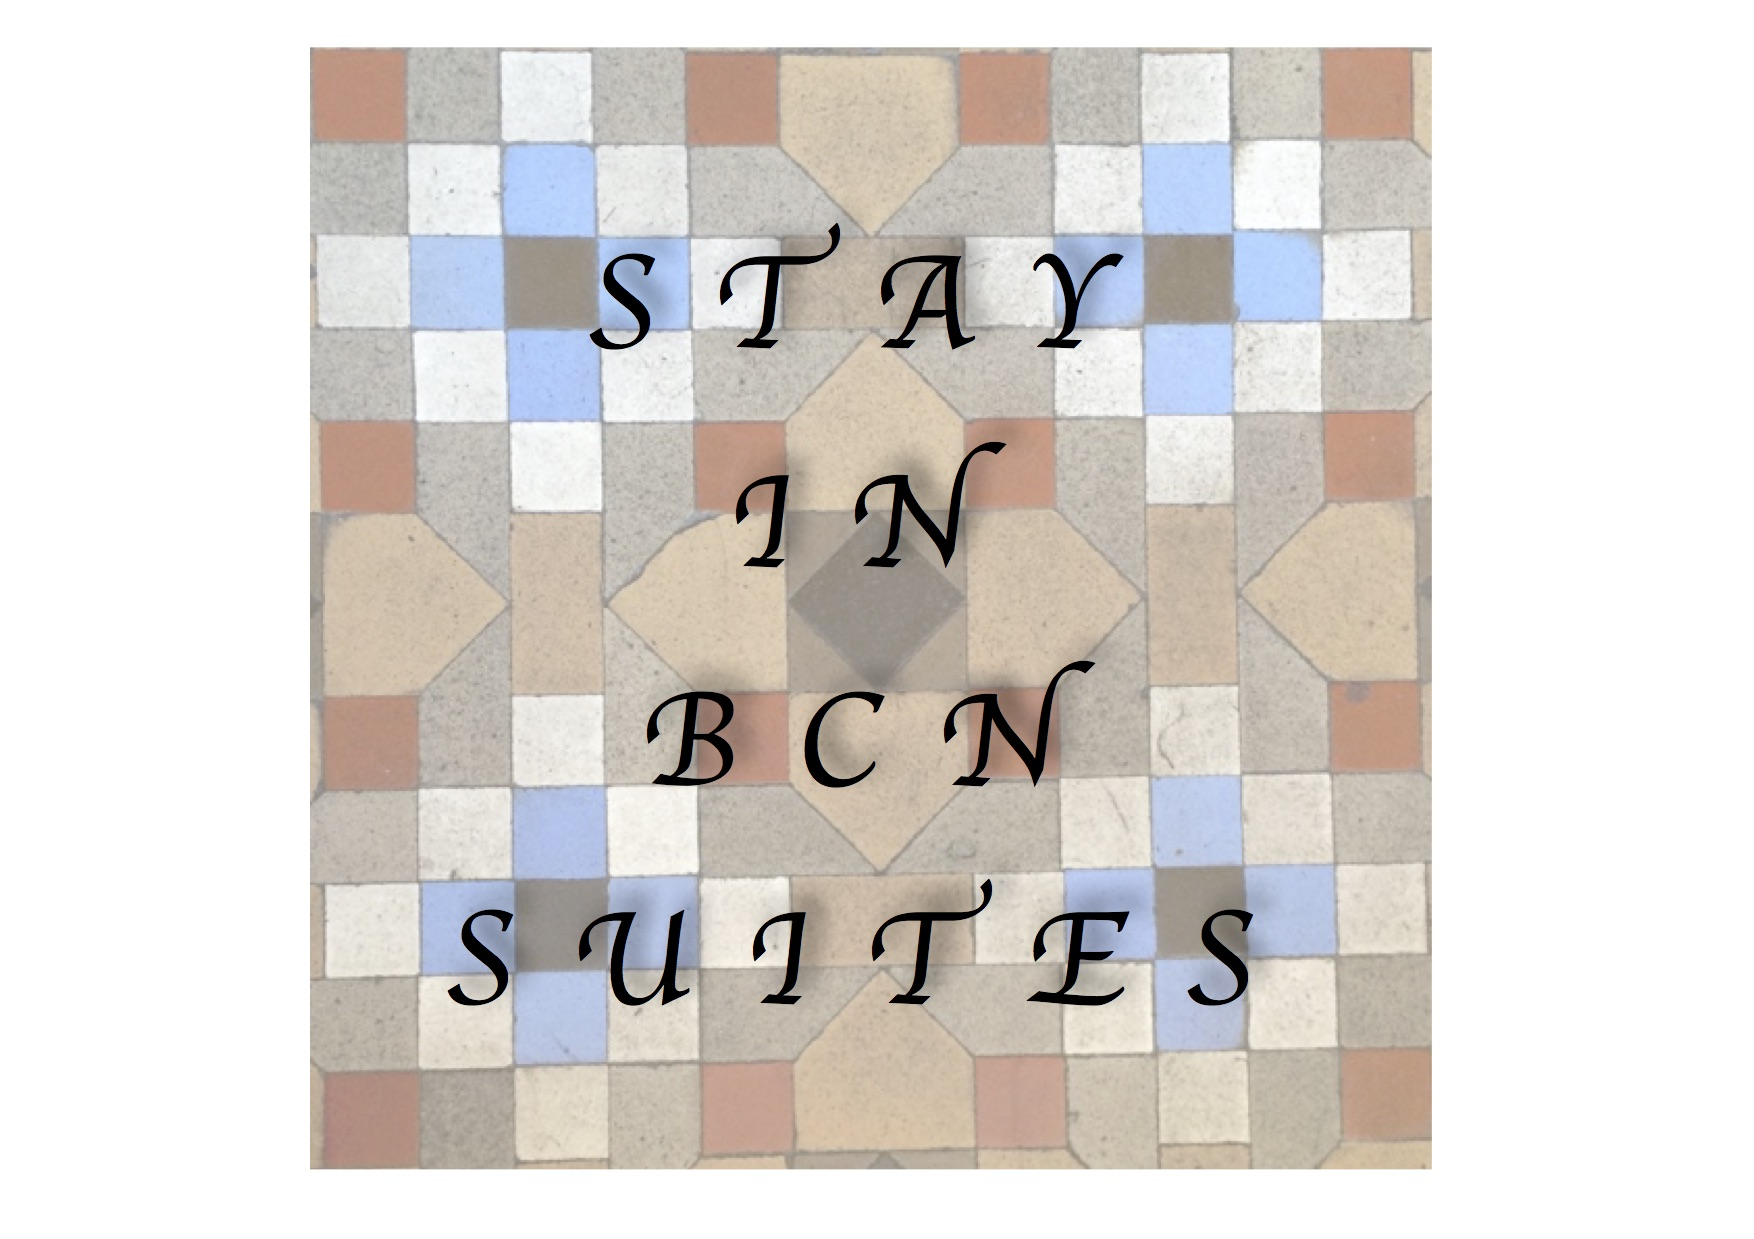 STAY IN BCN SUITES